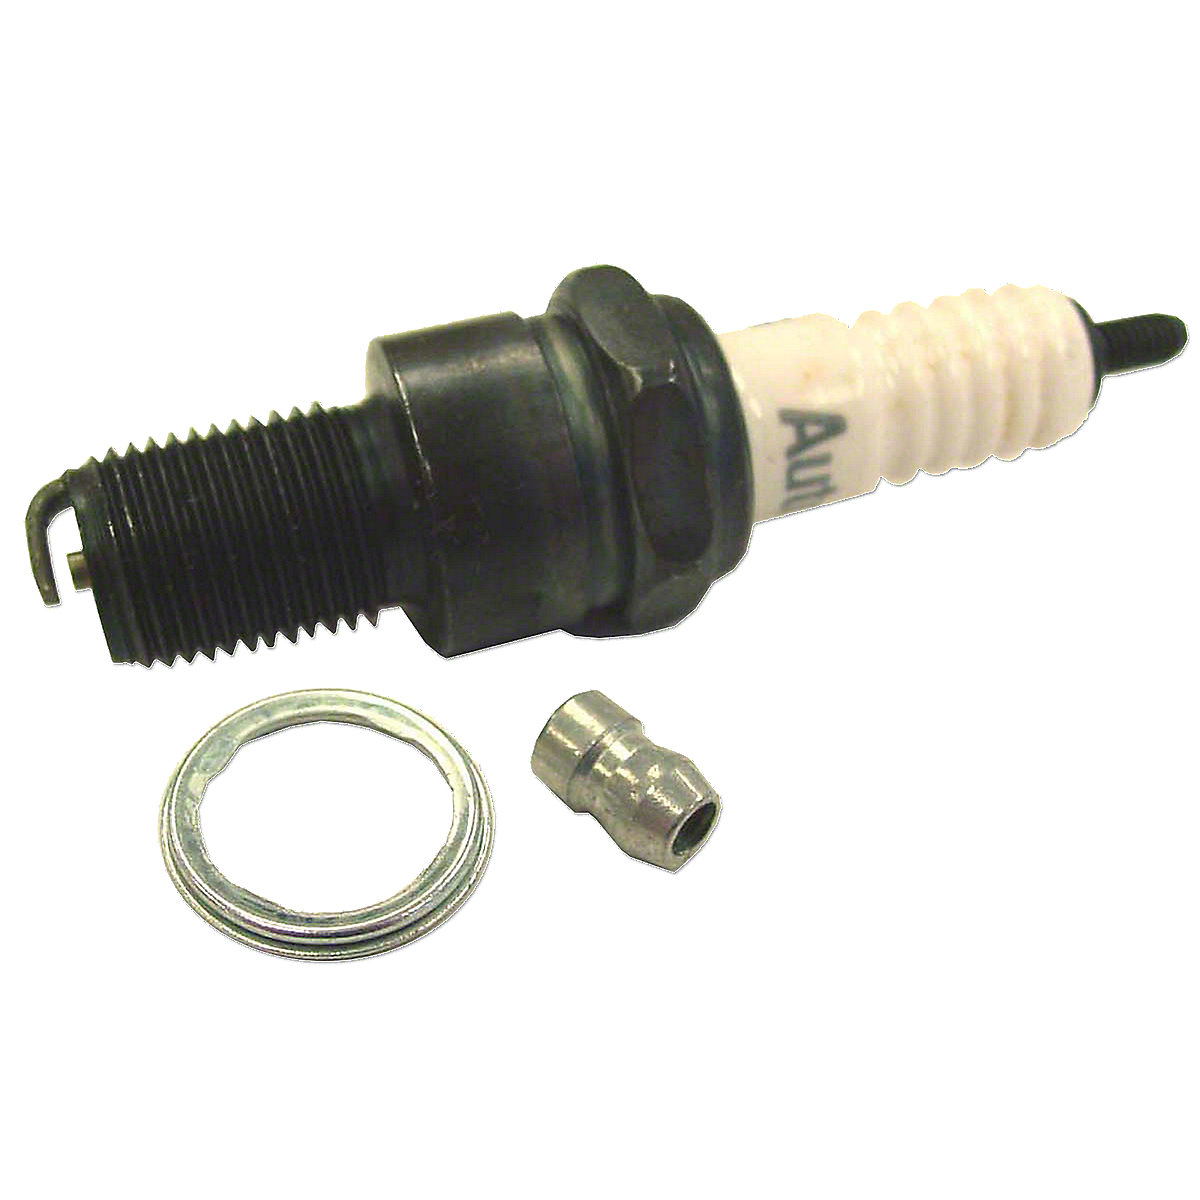 Autolite Spark Plug For Allis Chalmers: 190XT, D17, 170, 180, 190.